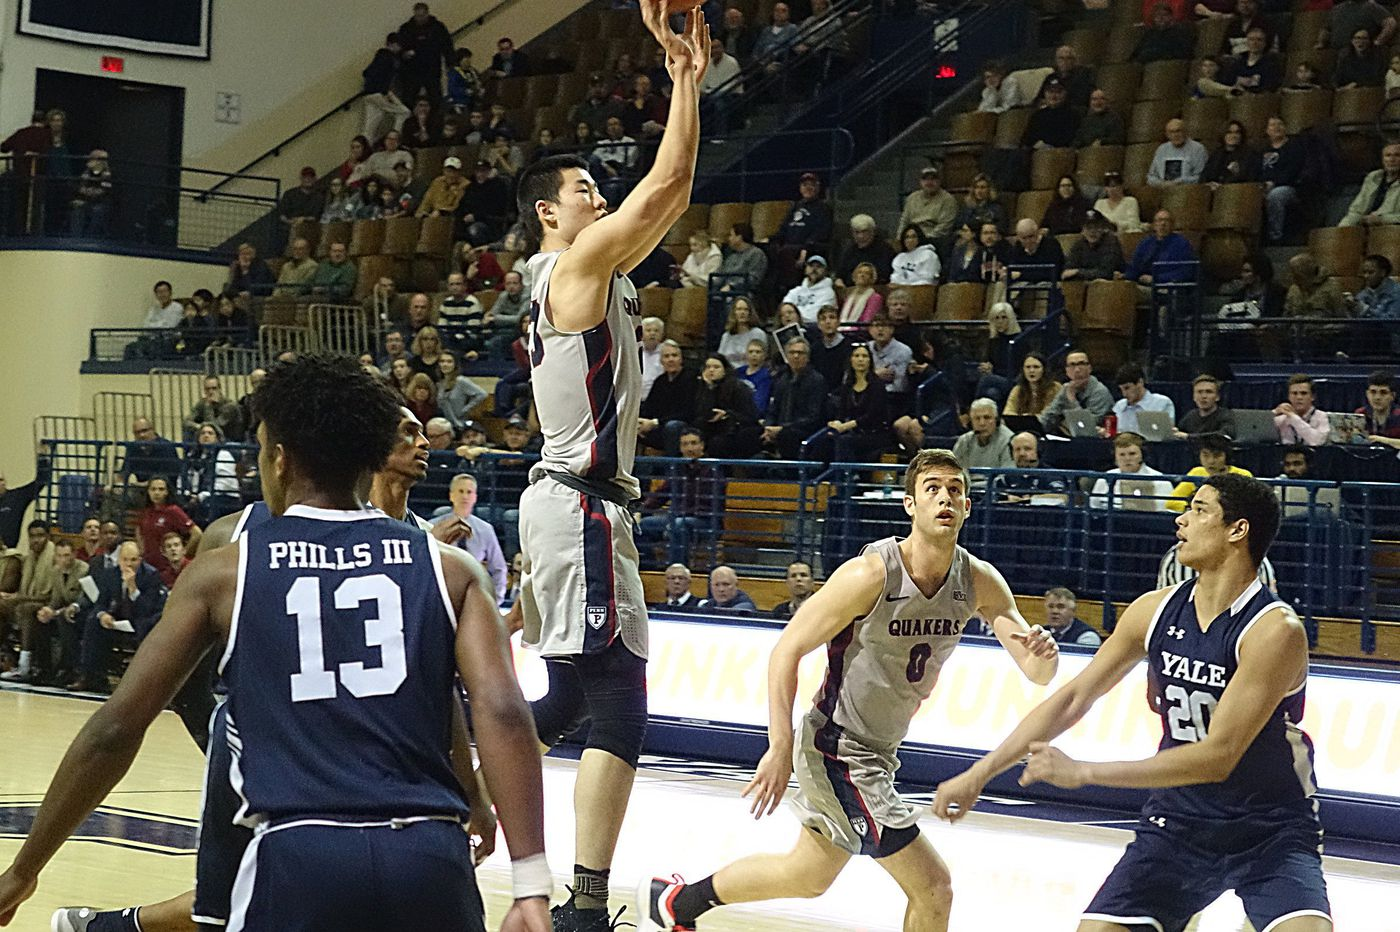 Penn loses to Yale, 78-65, as Ivy League woes continue